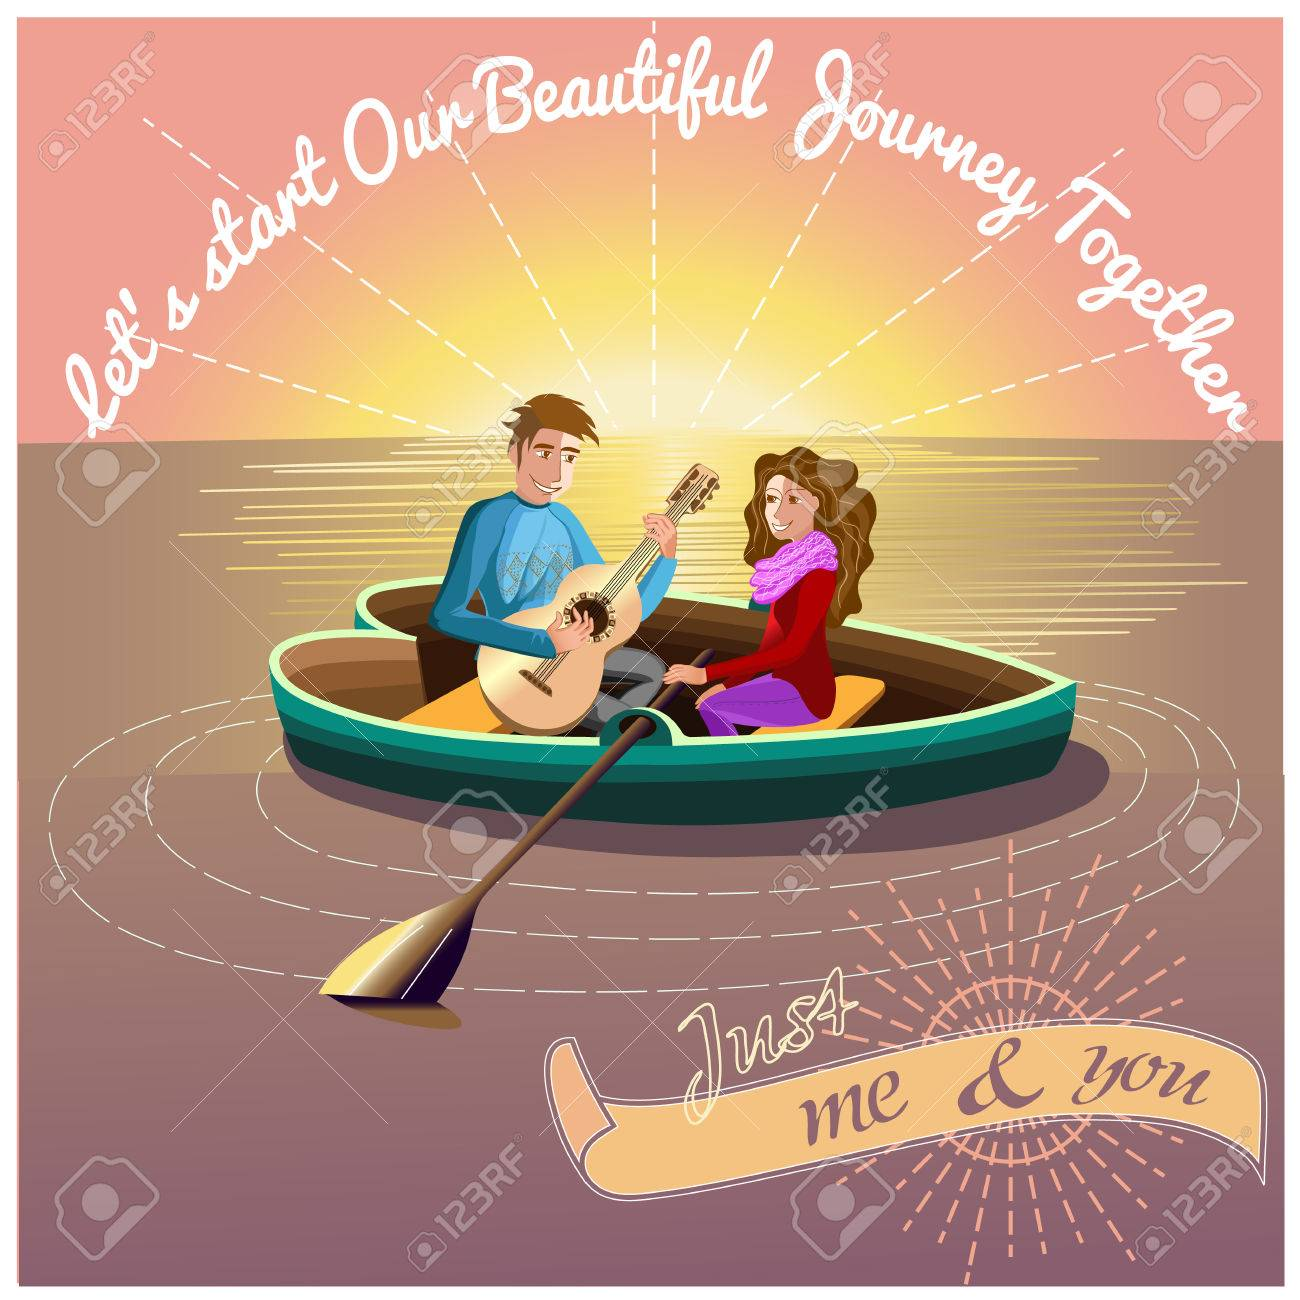 Love Journey Morning Presentation Card With Sun And Heart Boat